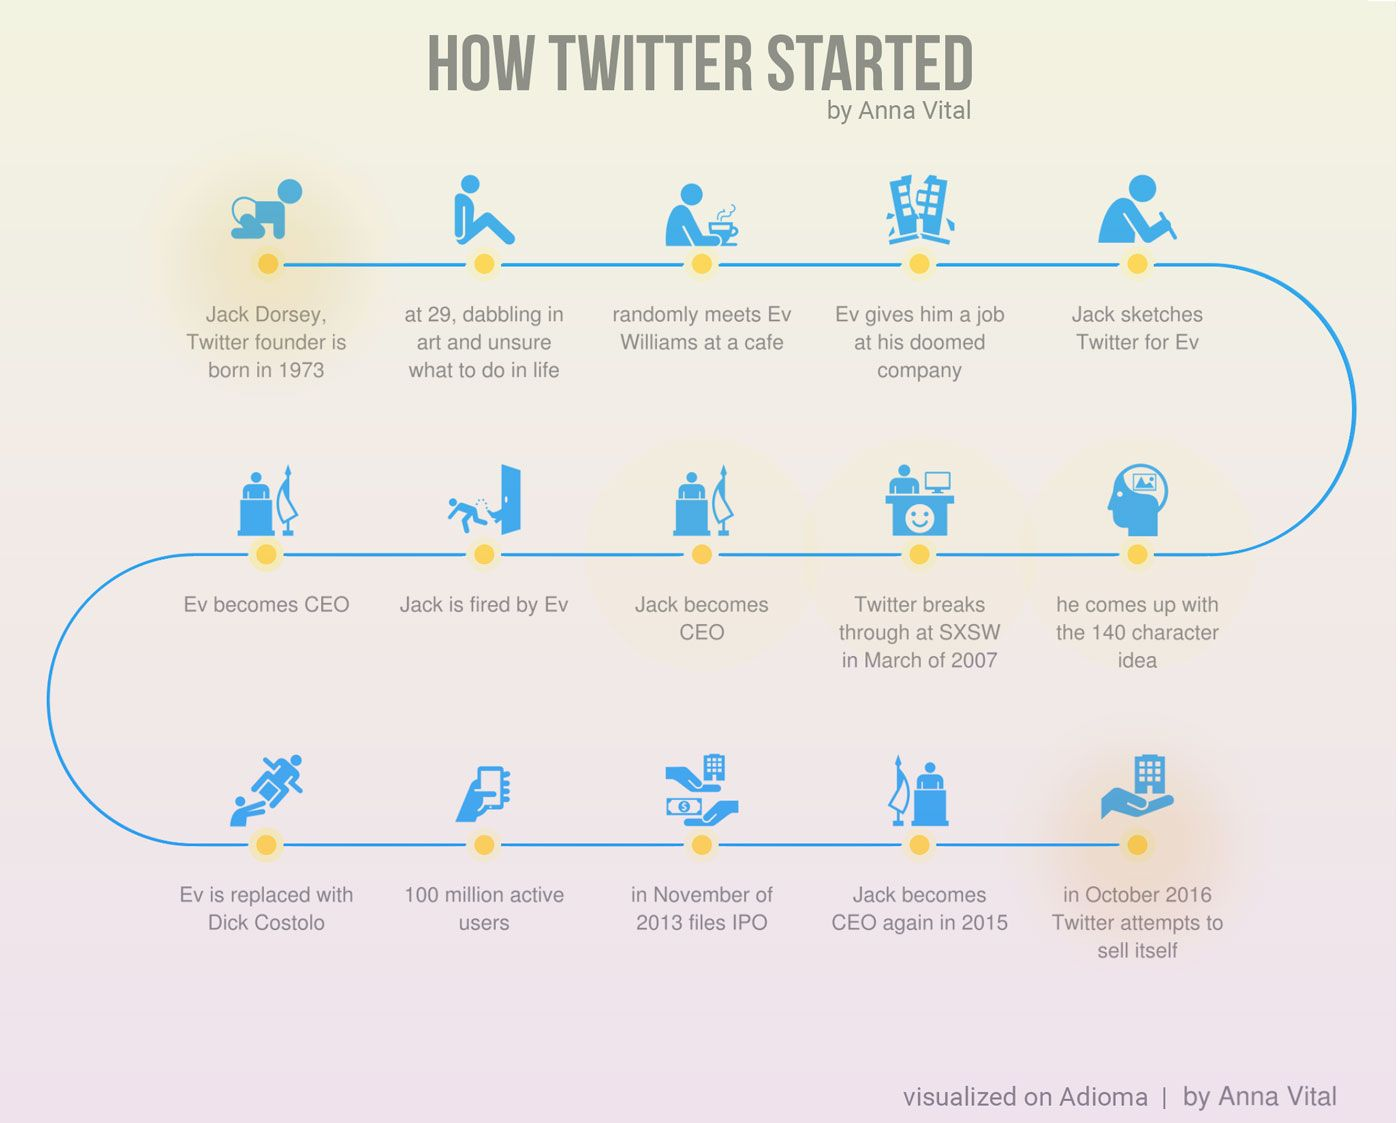 How Twitter started